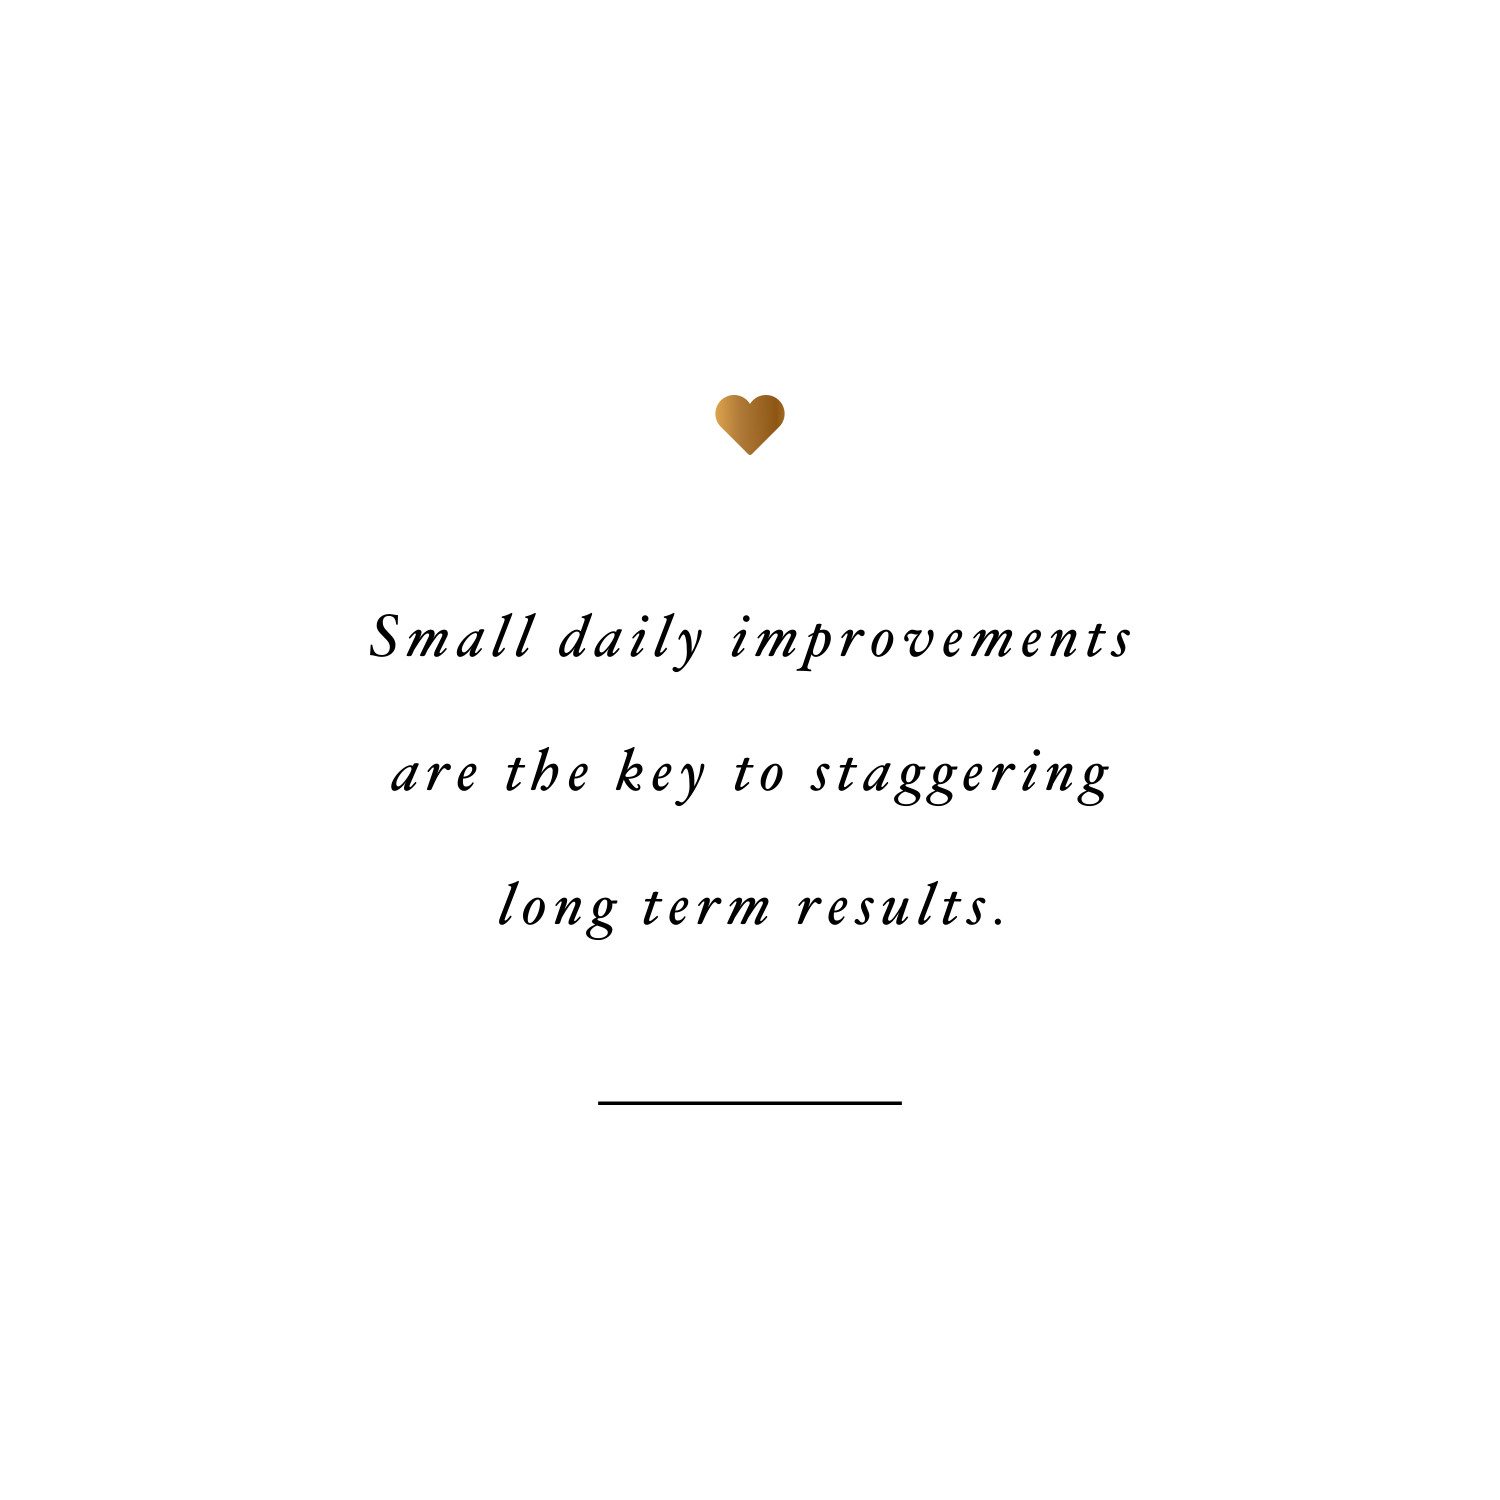 Small improvements! Browse our collection of motivational exercise quotes and get instant workout and fitness inspiration. Transform positive thoughts into positive actions and get fit, healthy and happy! https://www.spotebi.com/workout-motivation/fitness-inspiration-small-improvements/